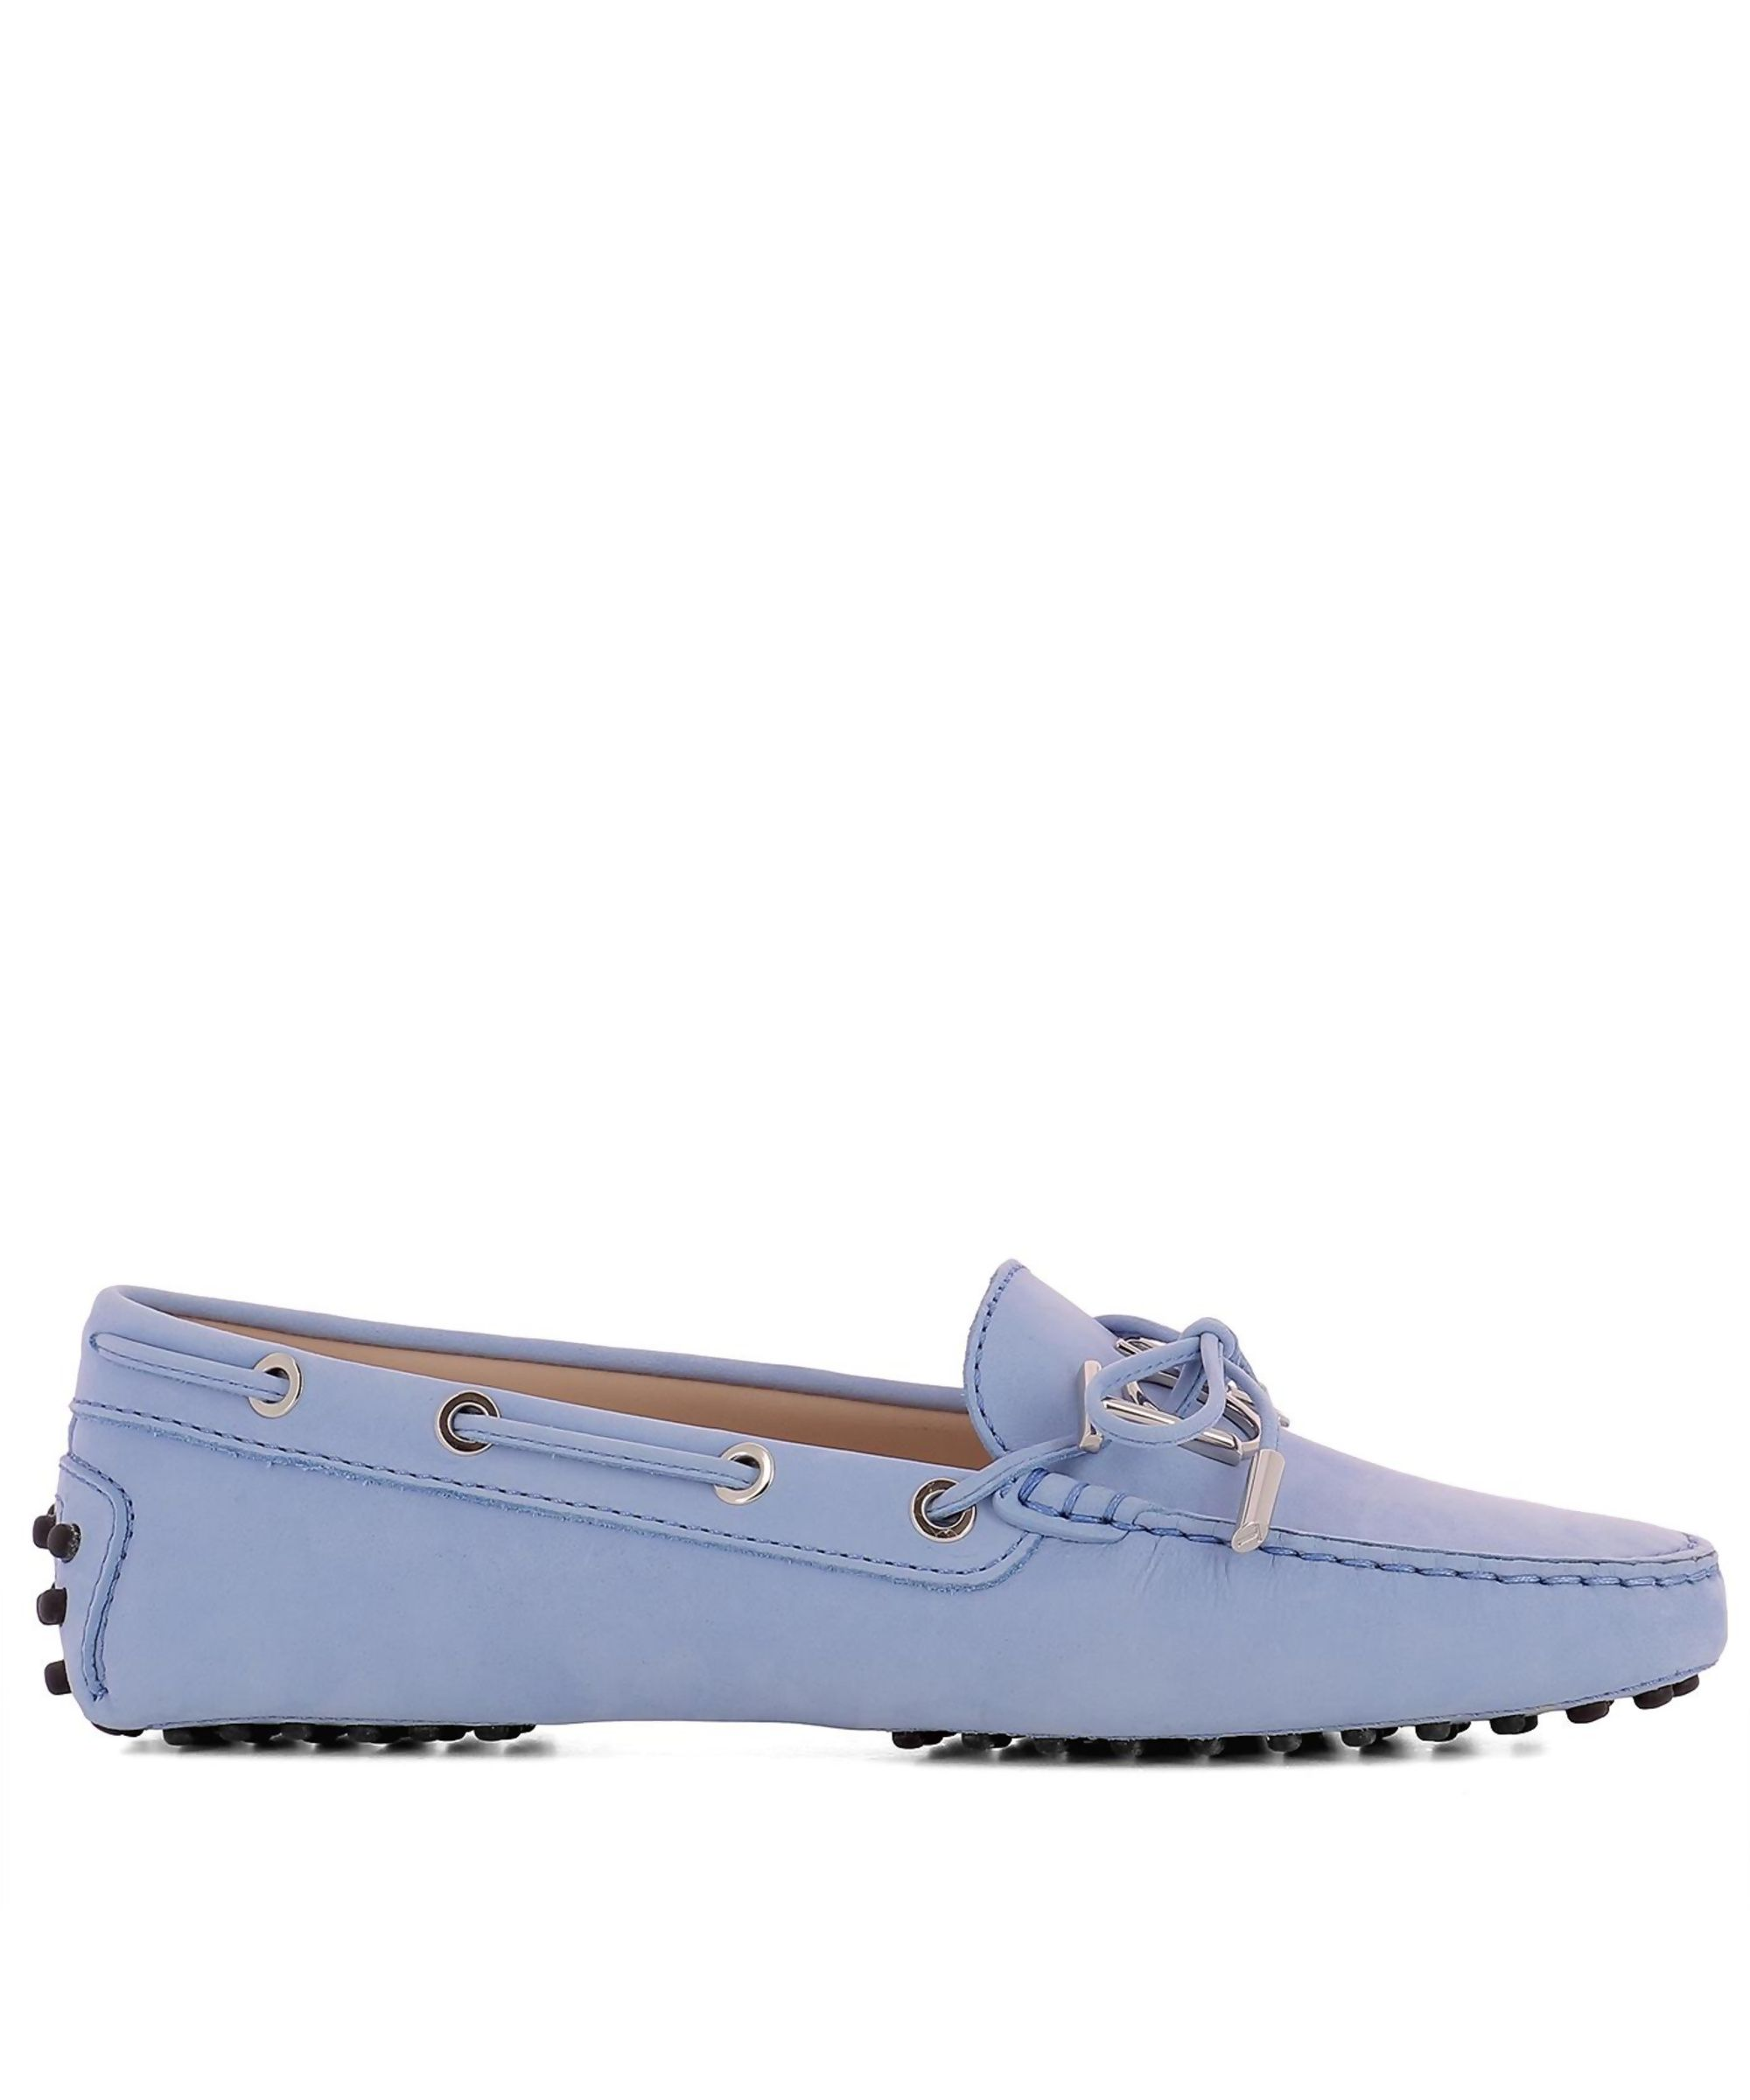 f904c7cdd93 TOD'S | No Brand Women's Light Blue Suede Loafers #Shoes #Loafers #TOD'S